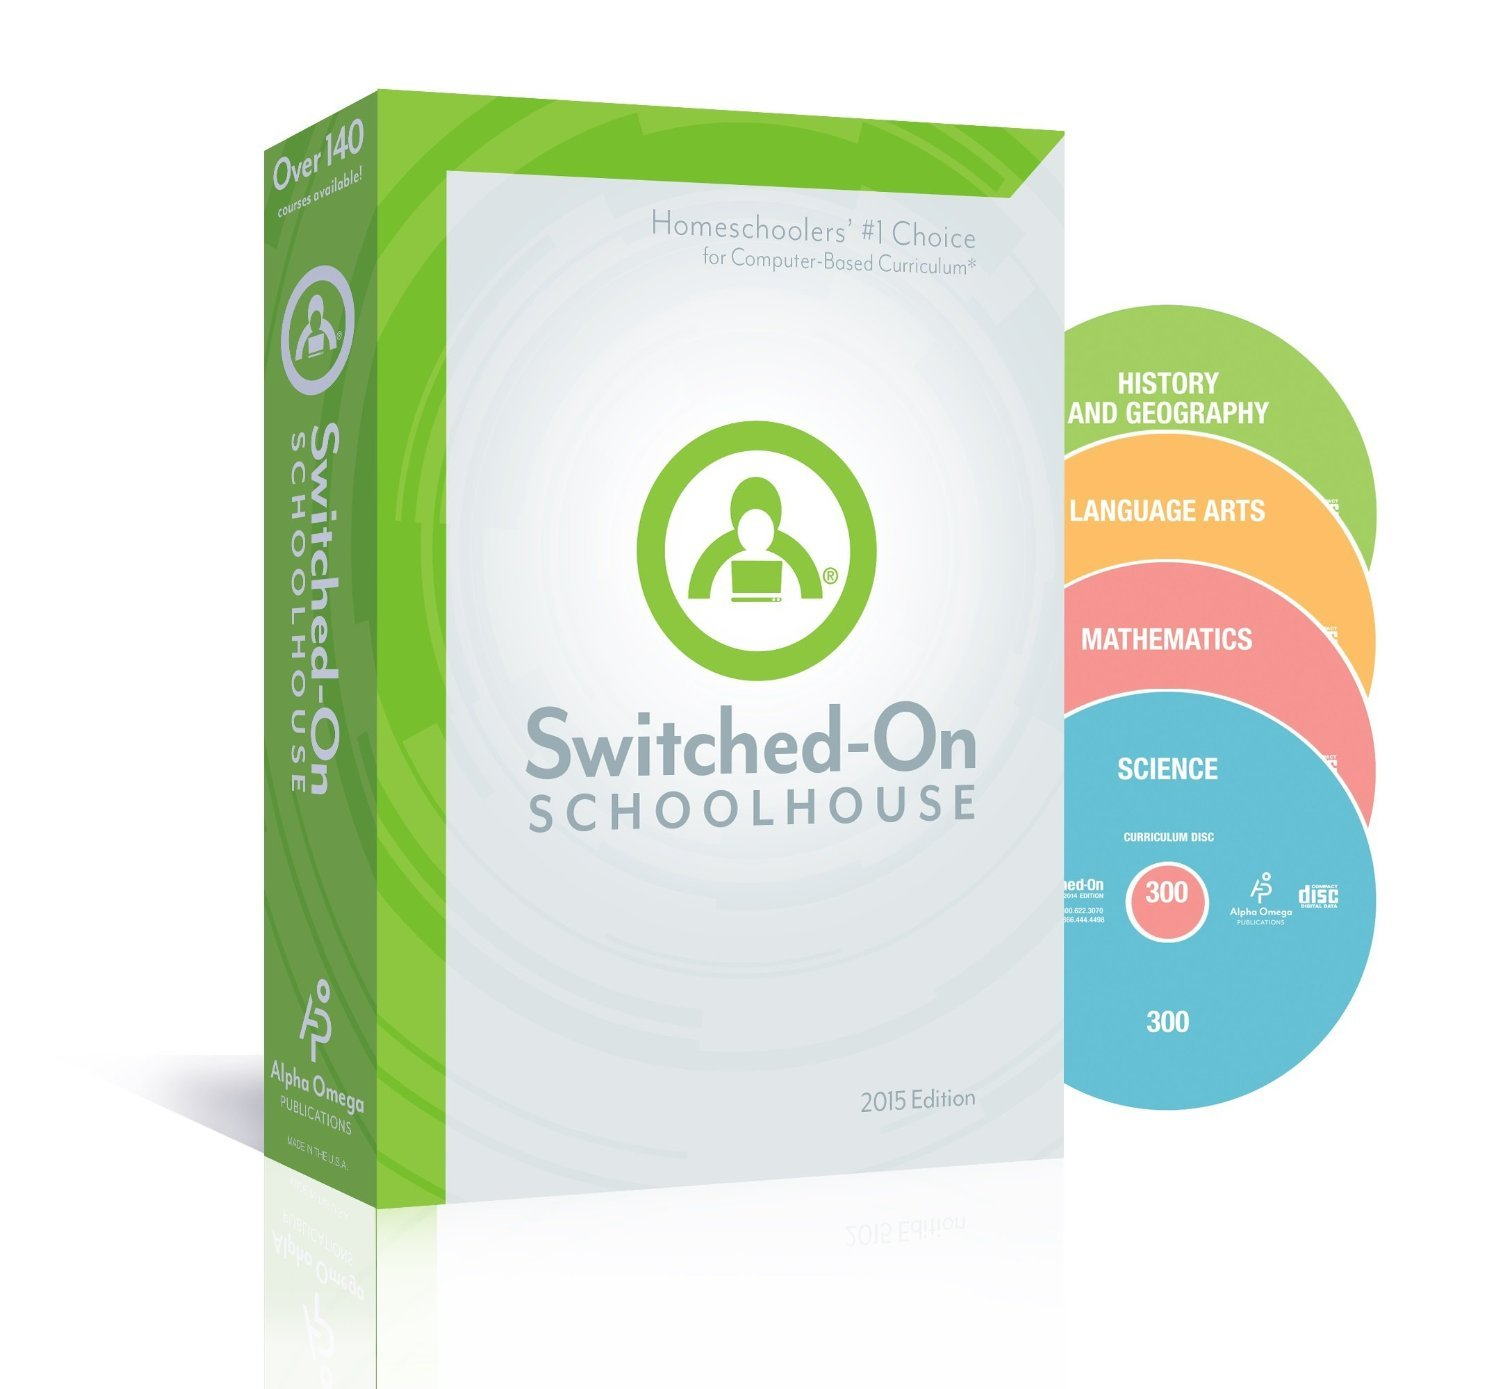 Switched on Schoolhouse, Grade 10, AOP 4-Subject Set - Math, Language, Science & History / Geography (Alpha Omega HomeSchooling), SOS 10TH Grade CD-ROM Curriculum, Core Subject Set